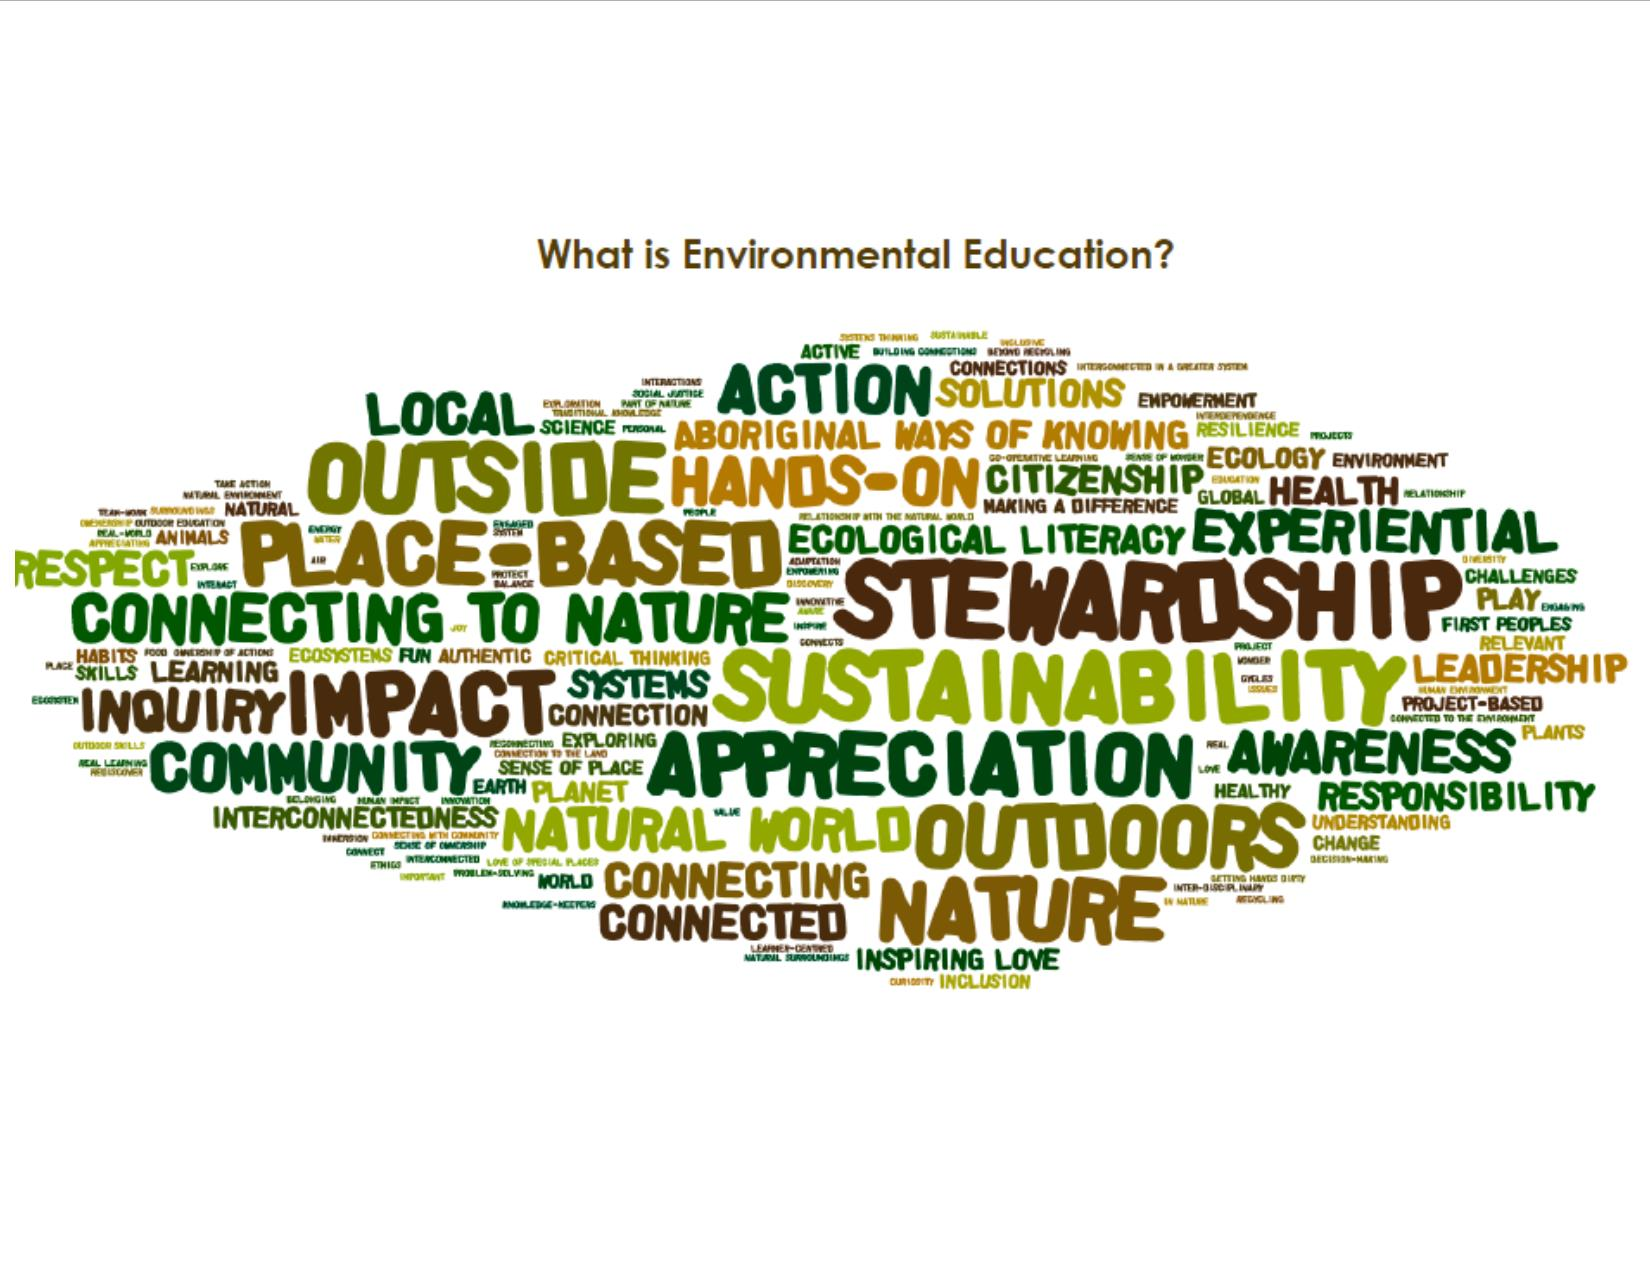 Environmental Health foundation subject